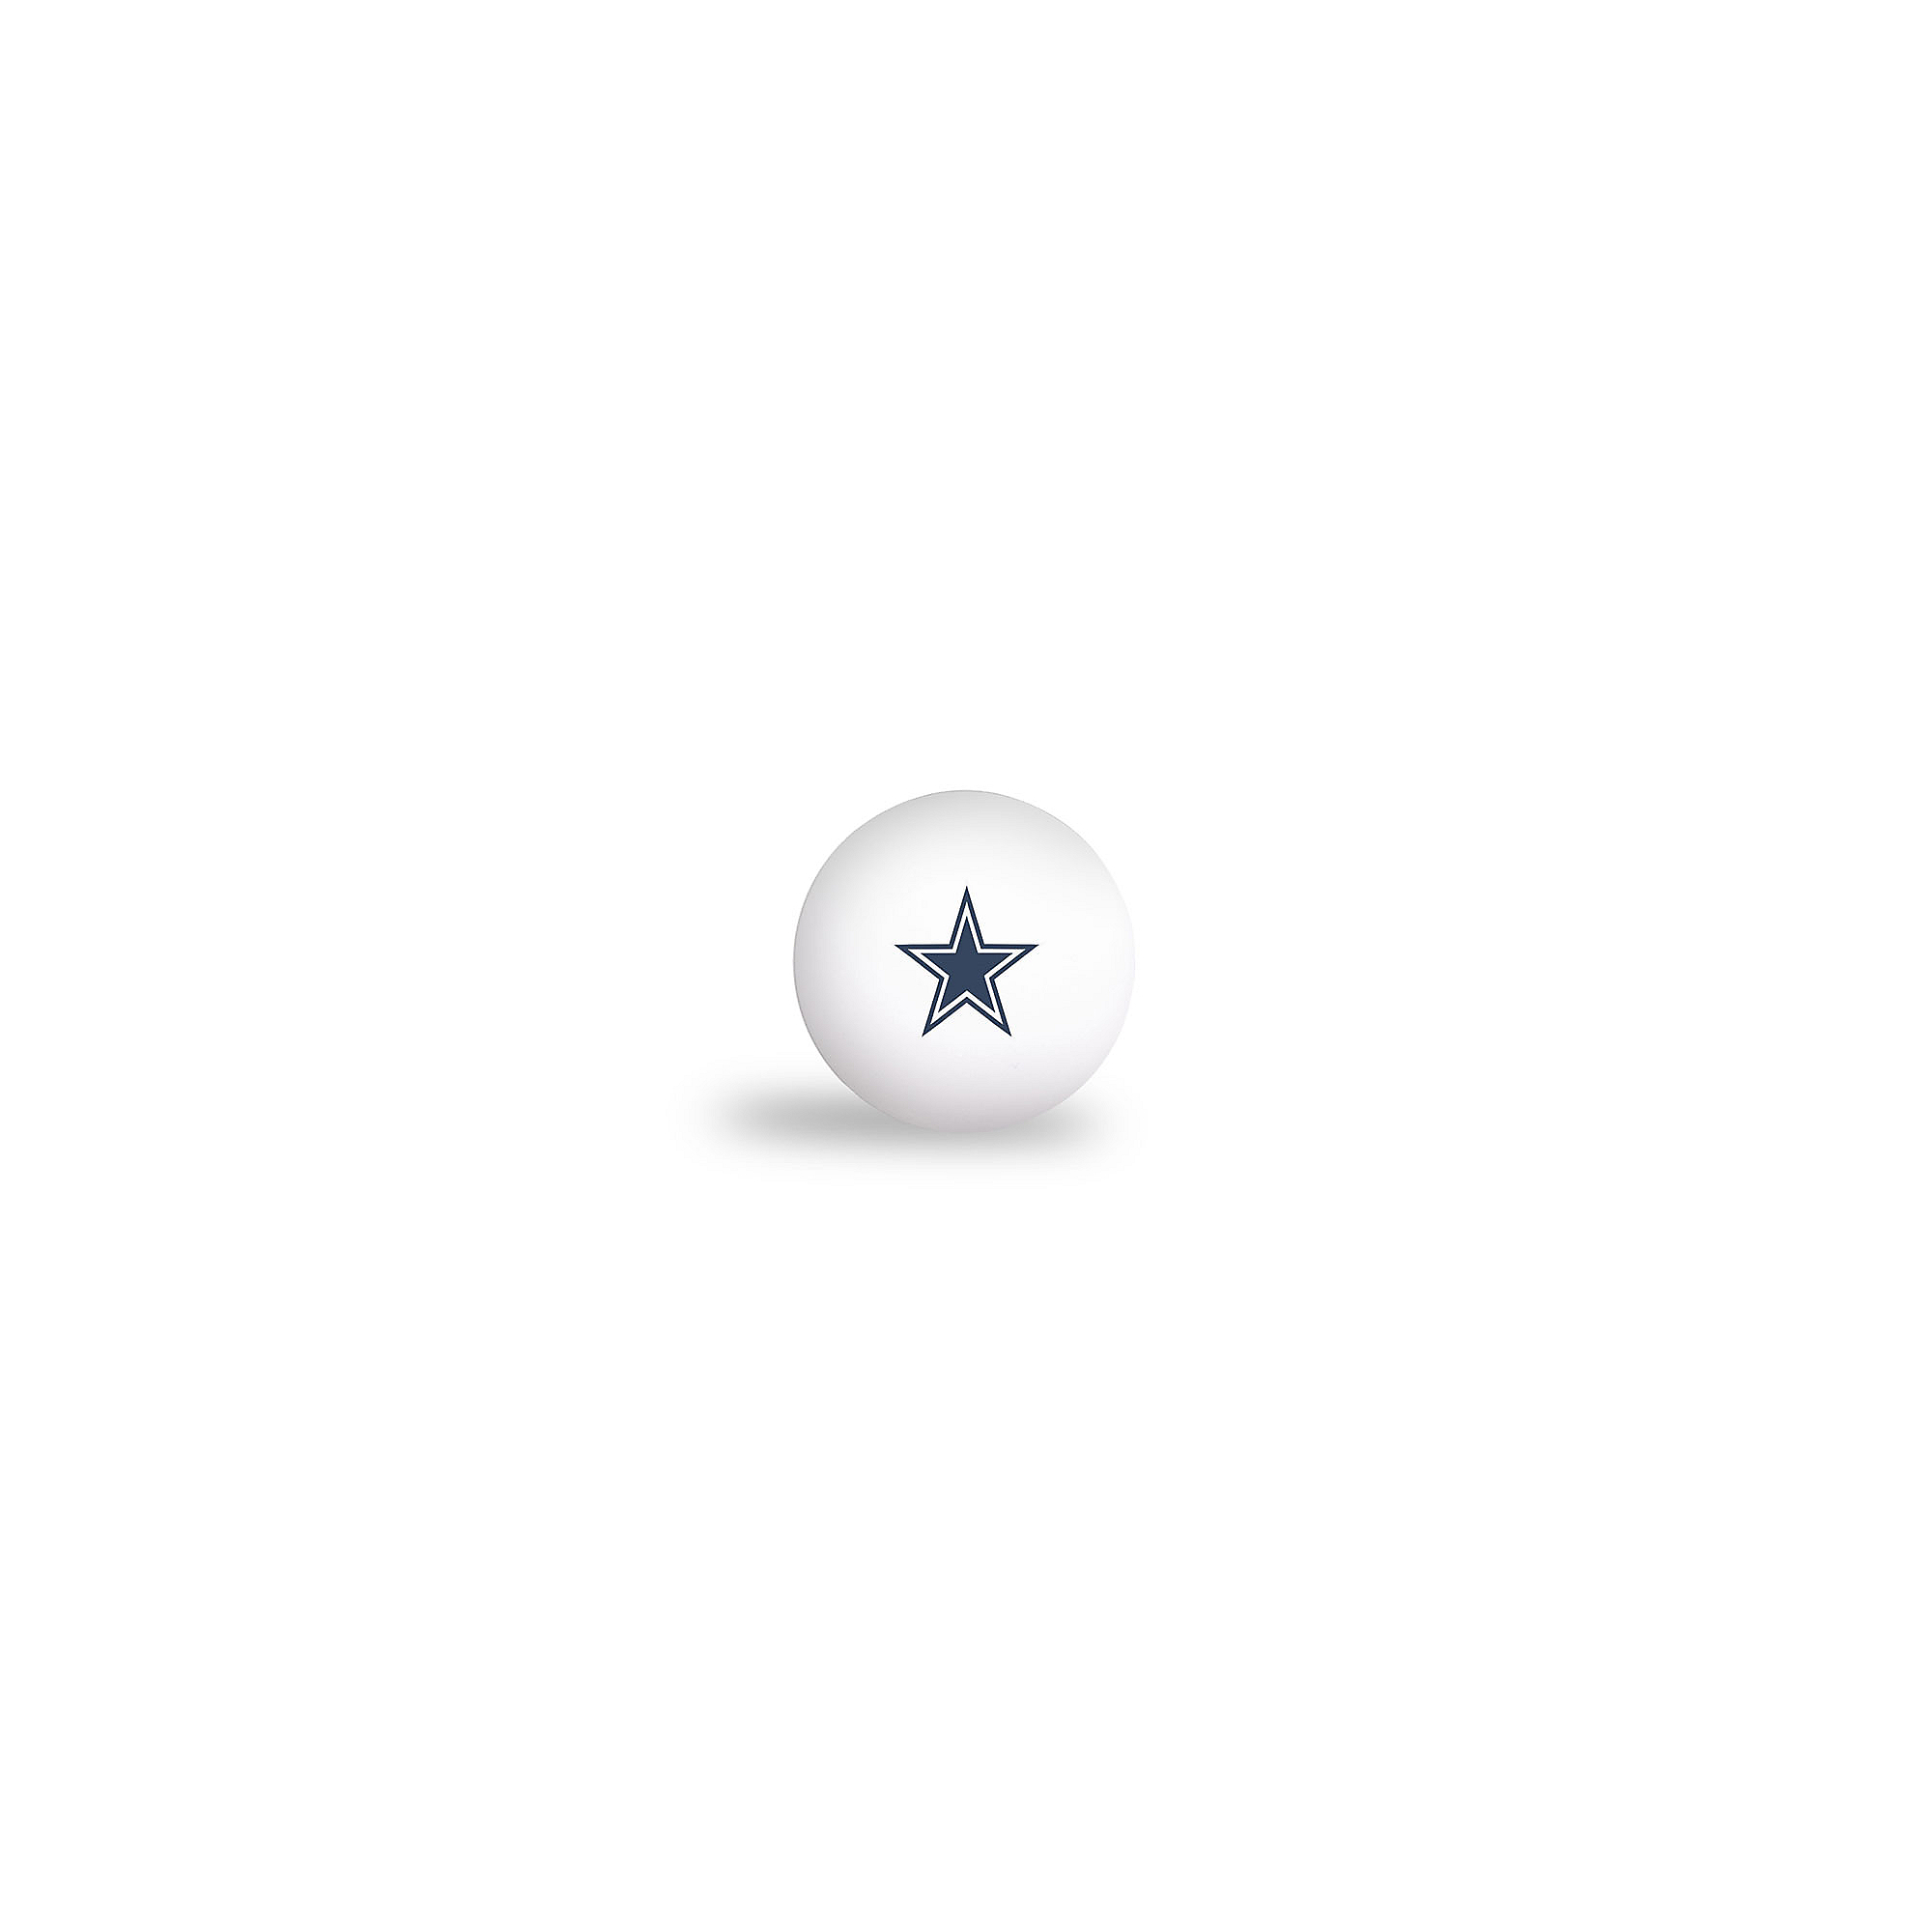 Dallas Cowboys Ping Pong Balls